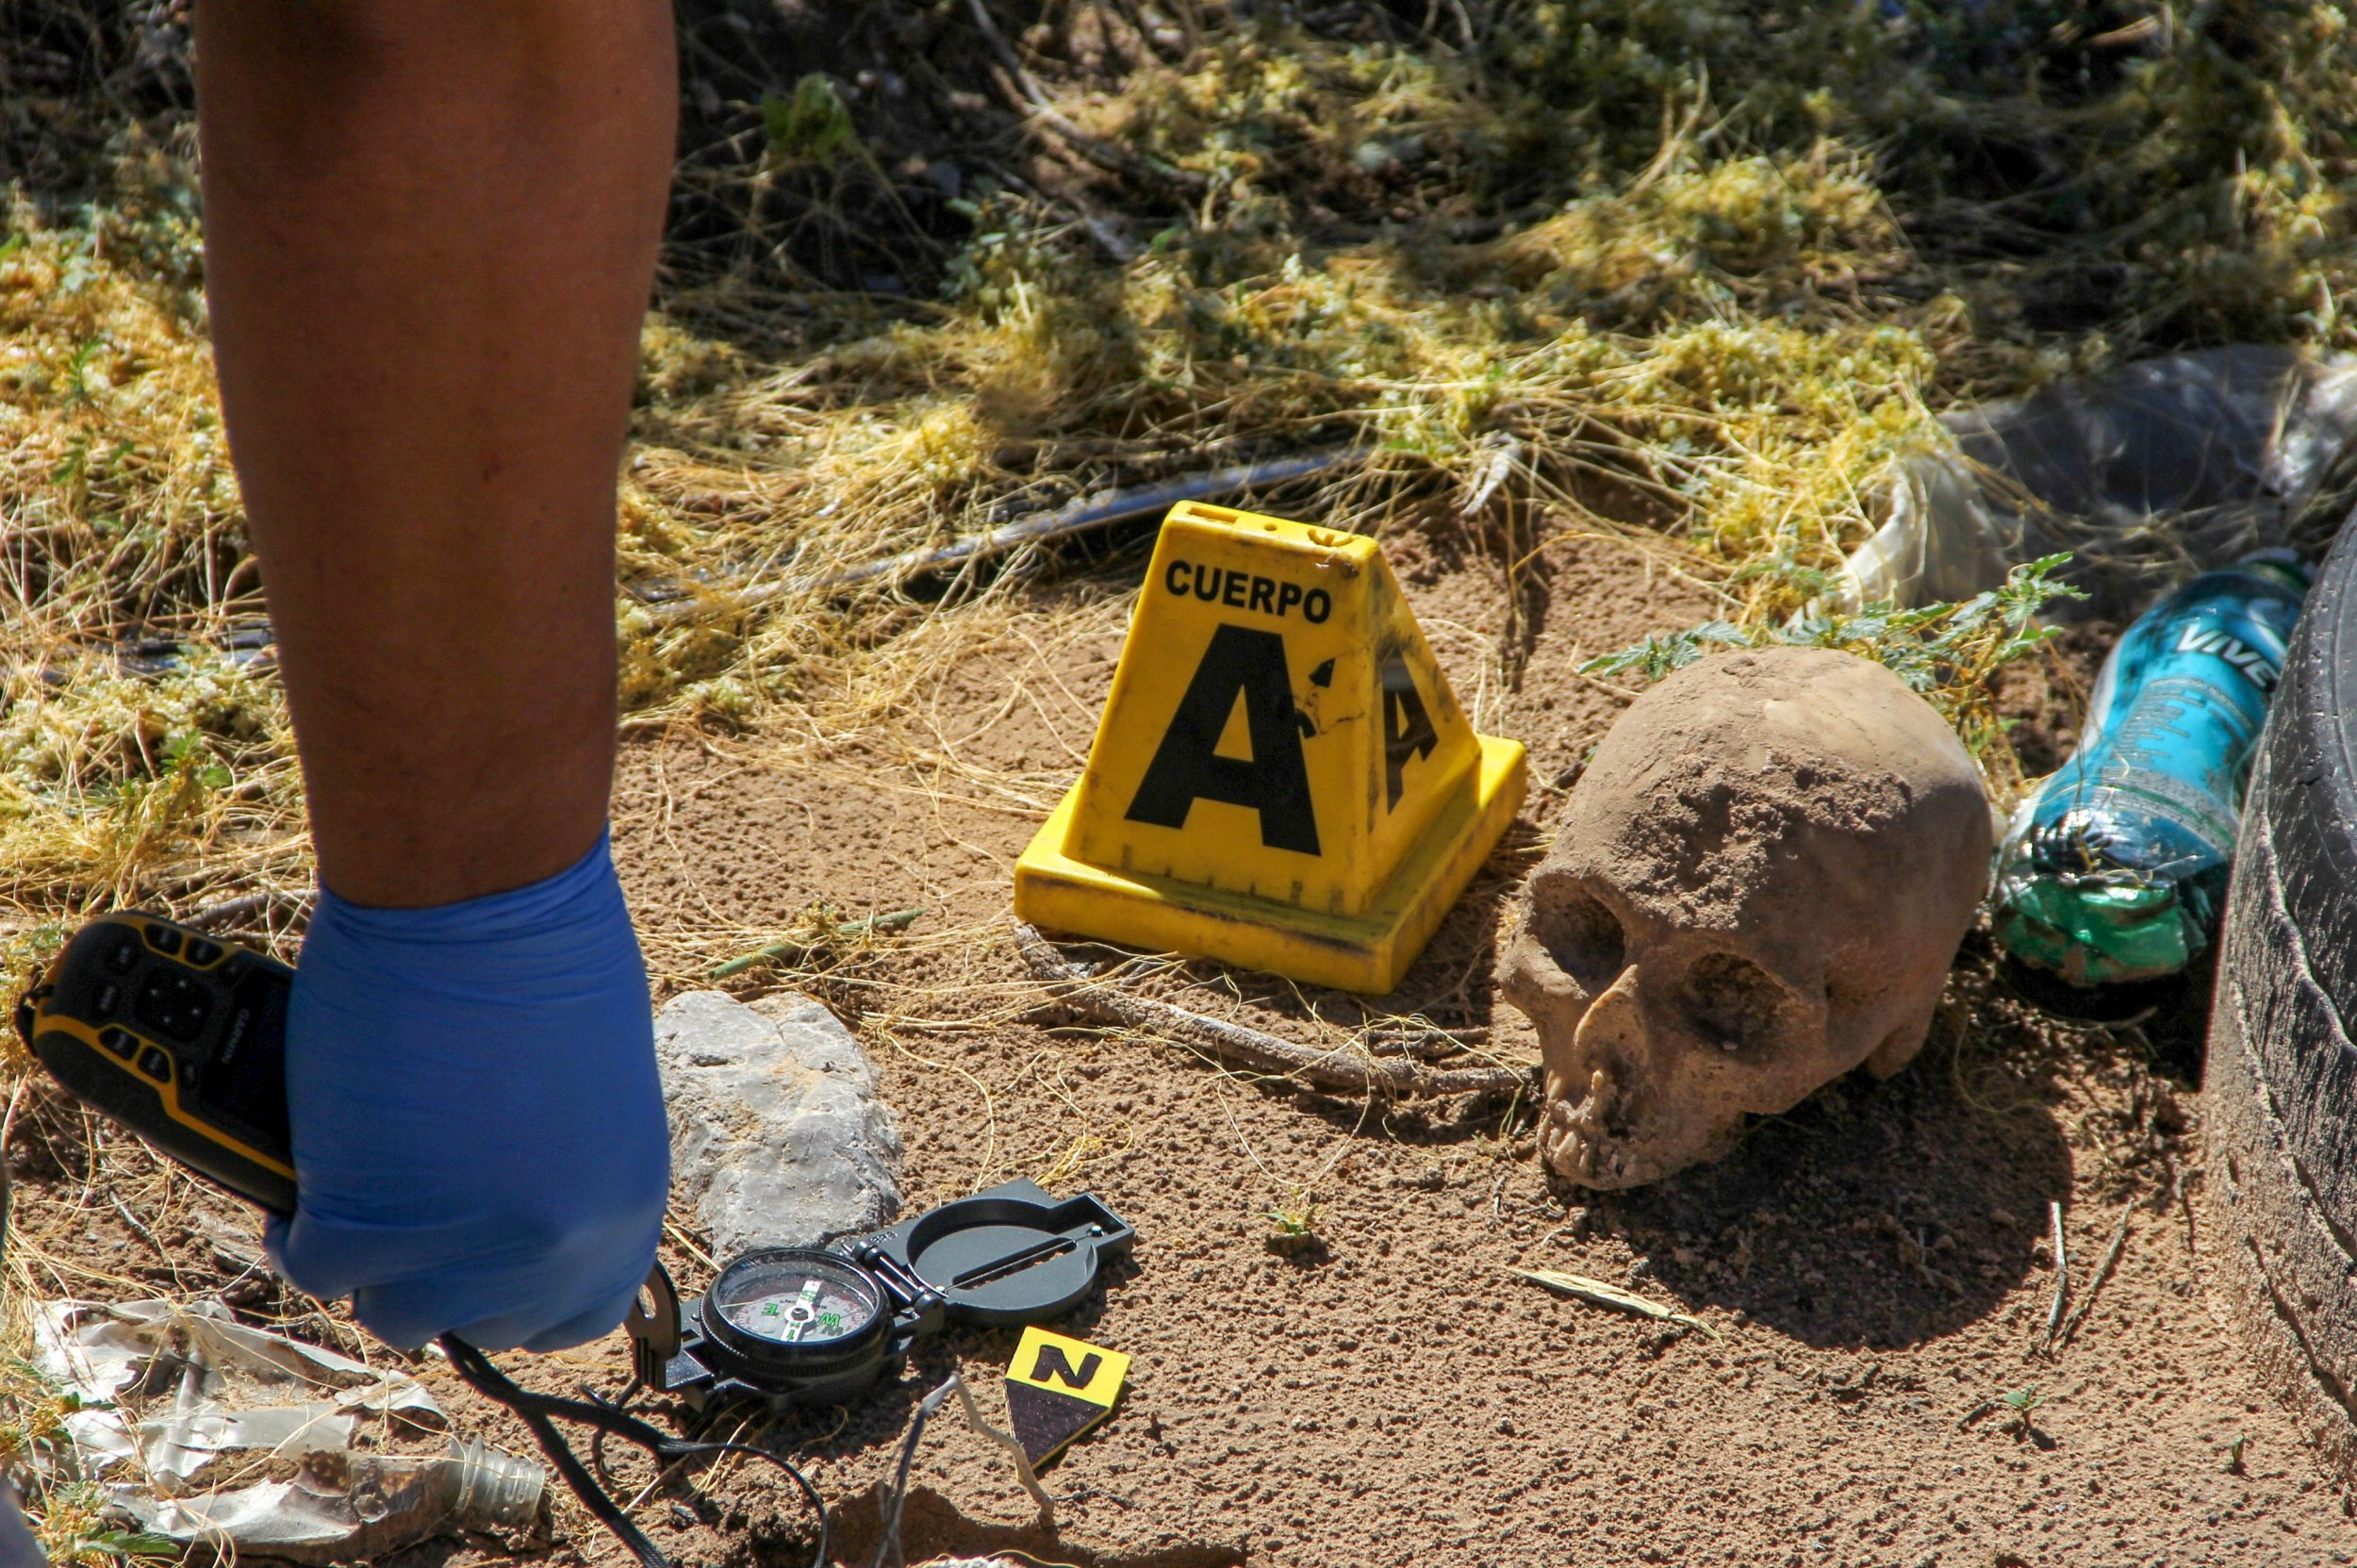 Mexico's Murder Rate Is so High It Has Altered the Life